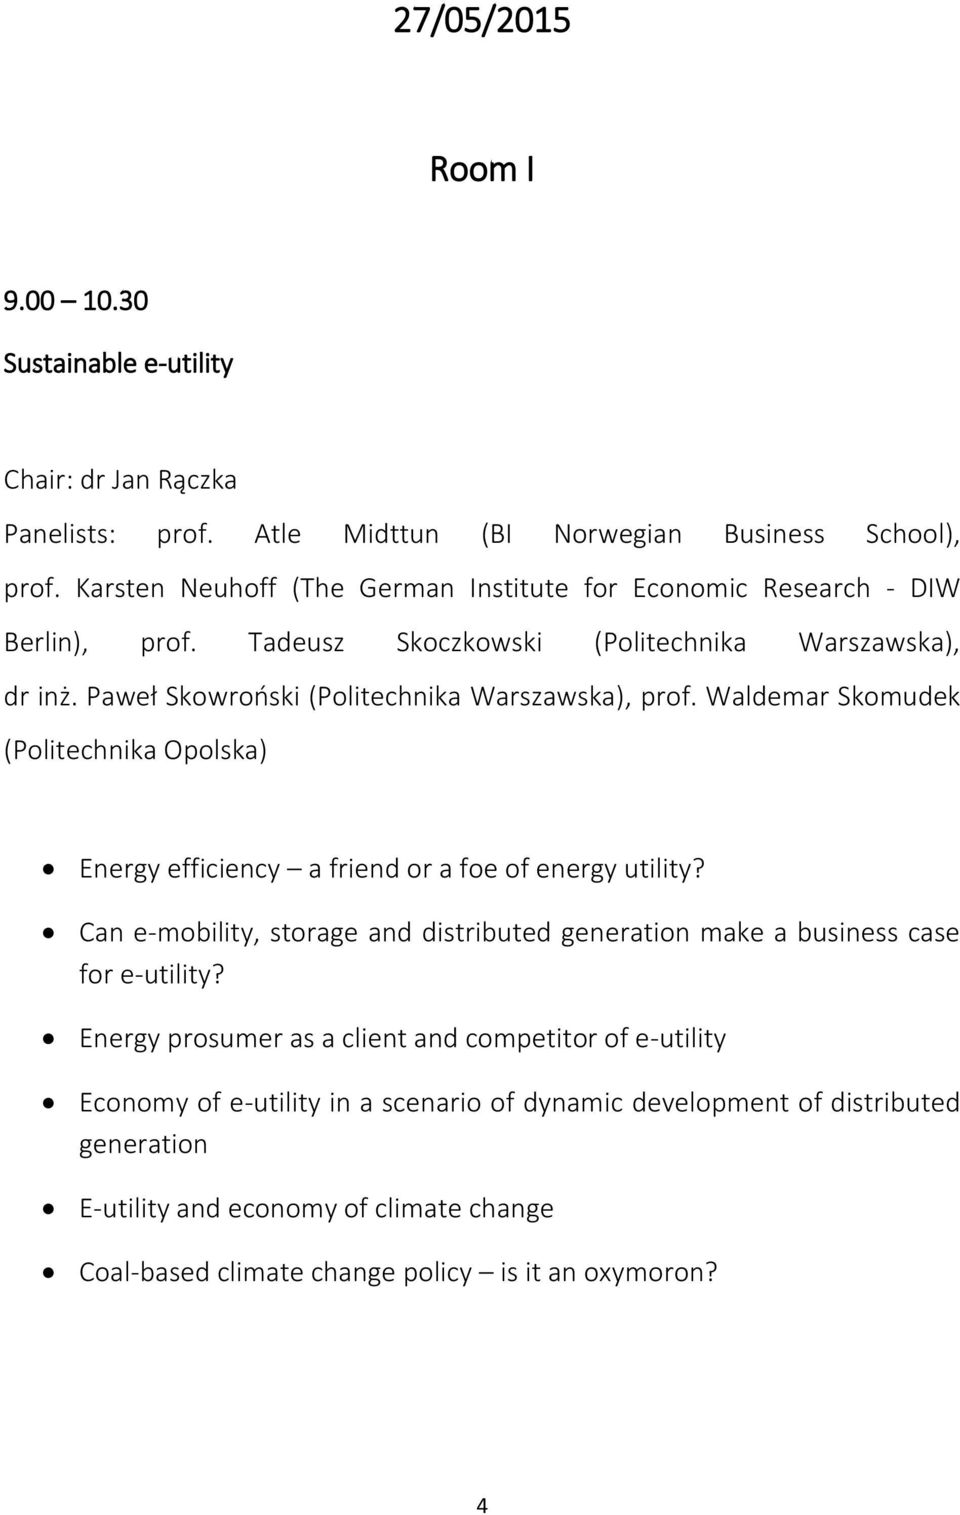 Waldemar Skomudek (Politechnika Opolska) Energy efficiency a friend or a foe of energy utility? Can e-mobility, storage and distributed generation make a business case for e-utility?